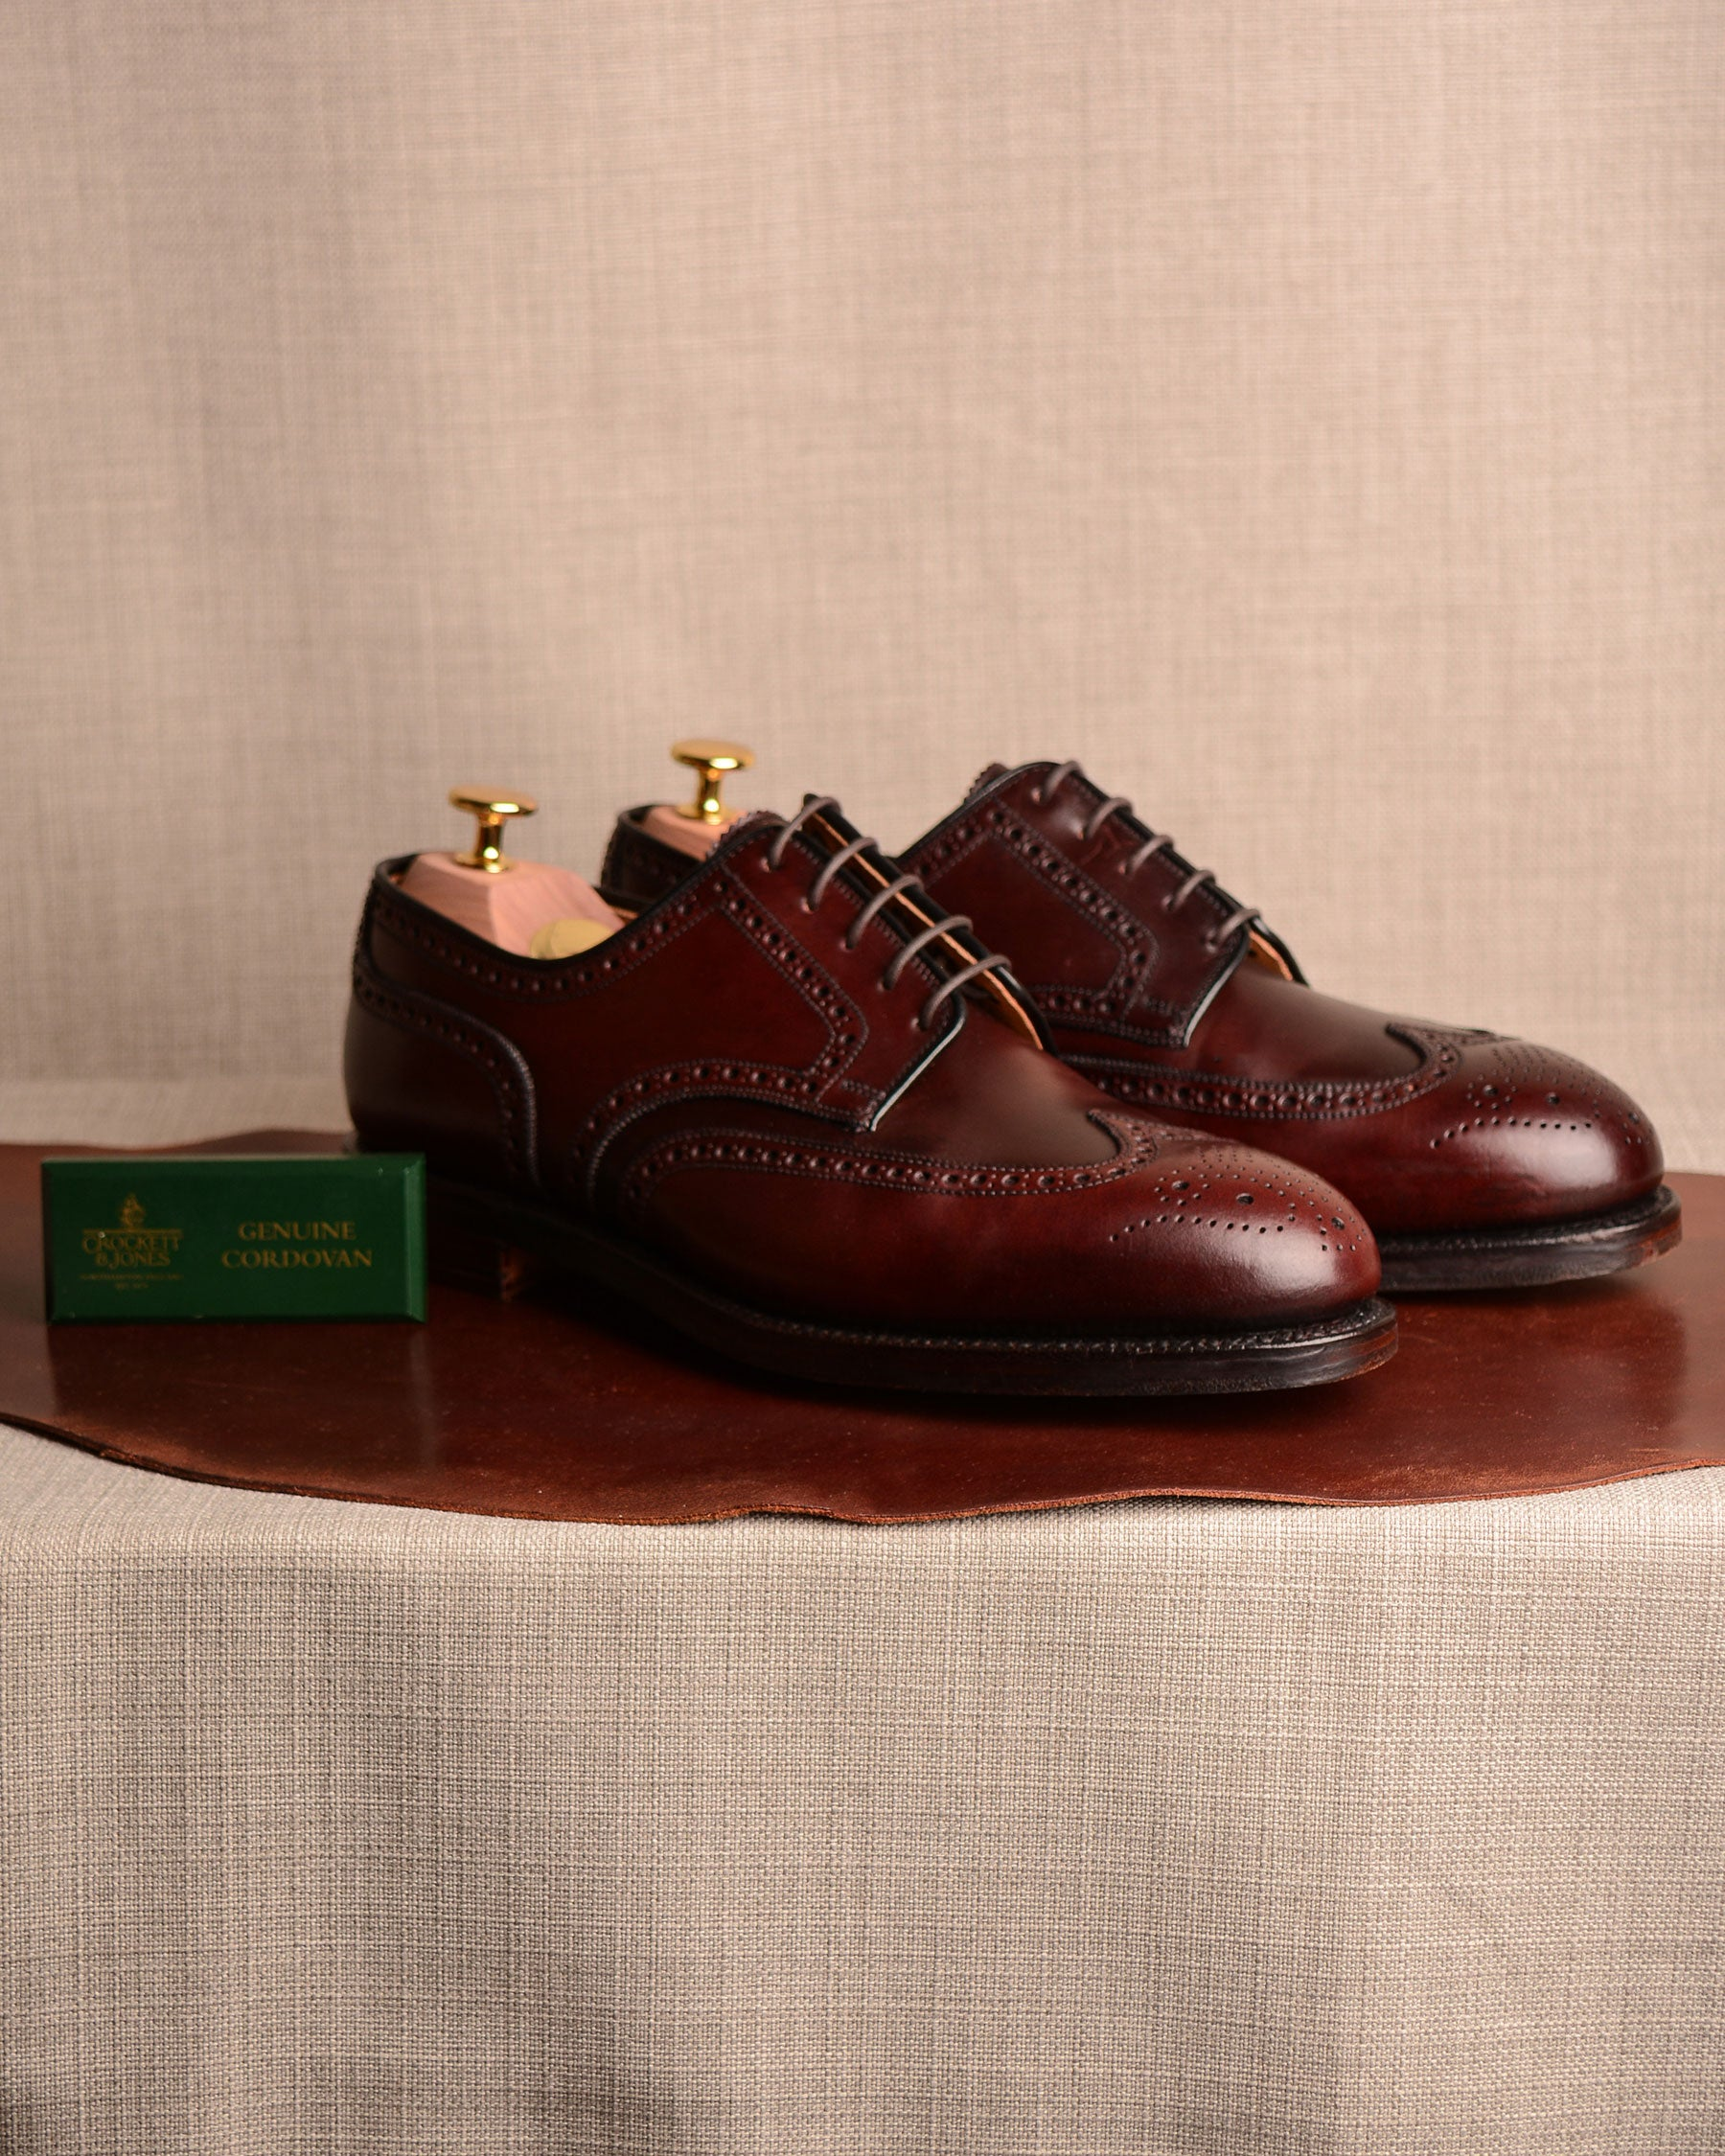 Crockett & Jones Cardiff - Col. 8 Cordovan